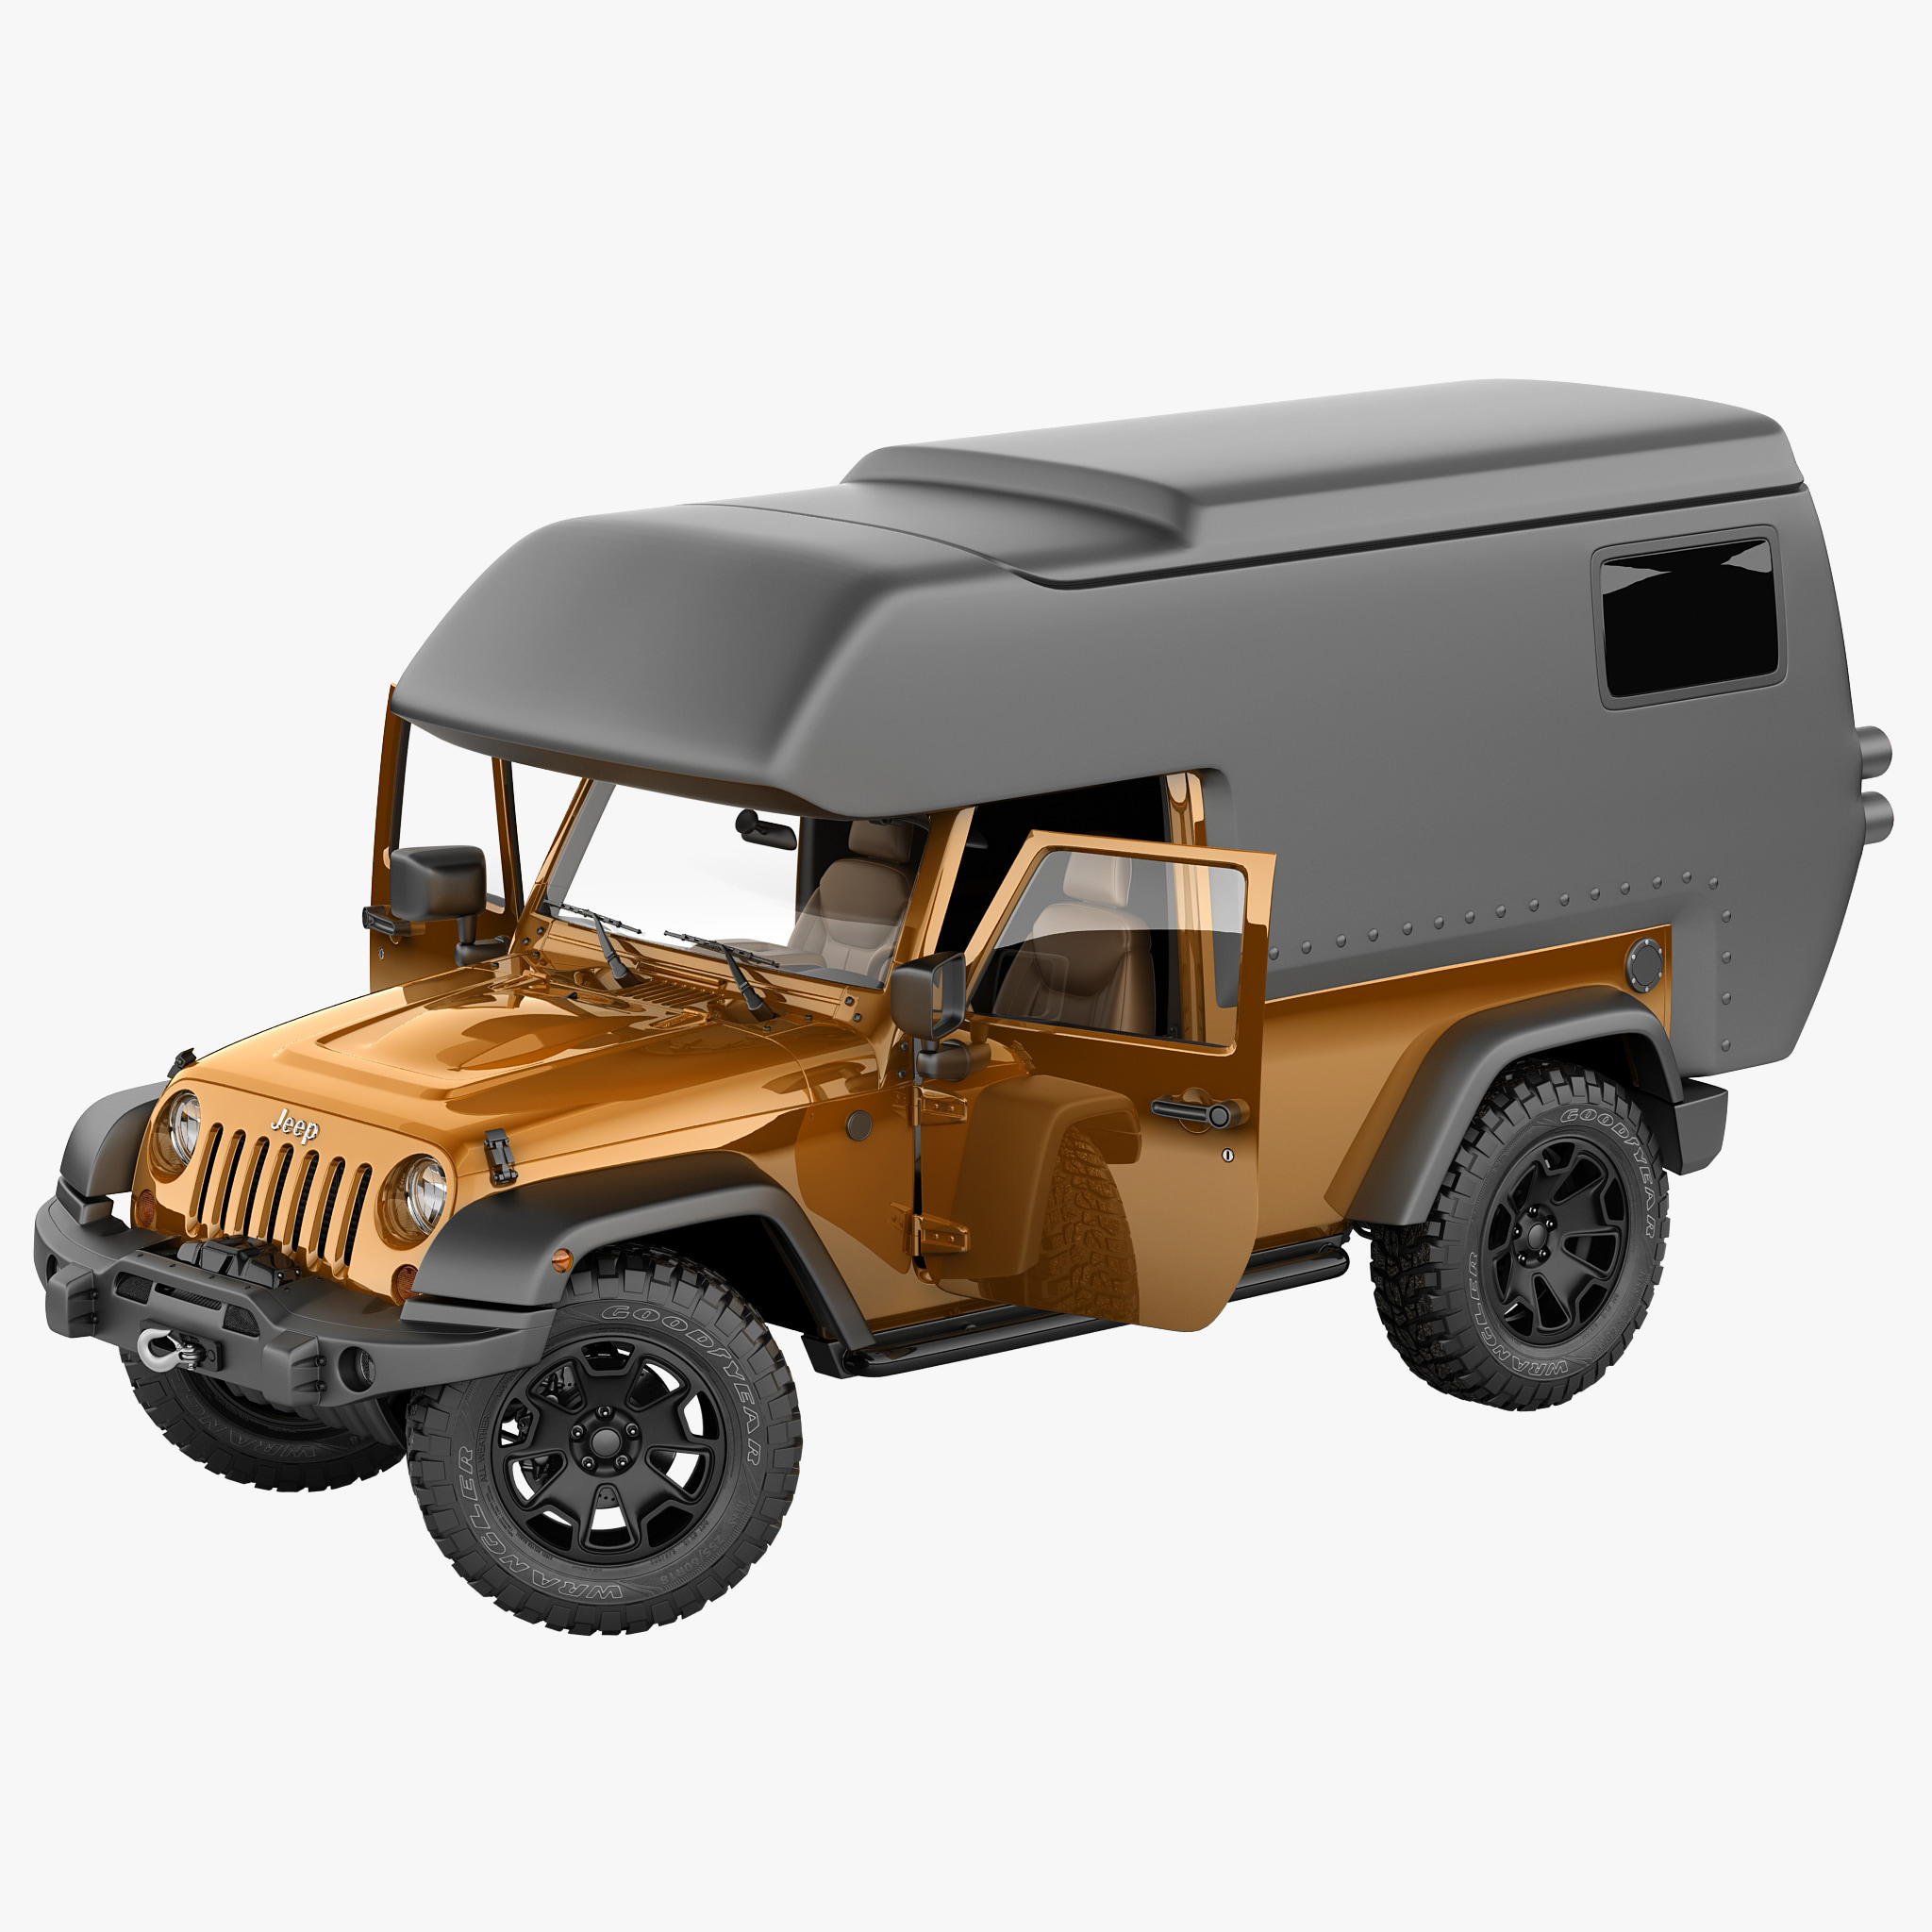 maya jeep wrangler moab camper. Black Bedroom Furniture Sets. Home Design Ideas